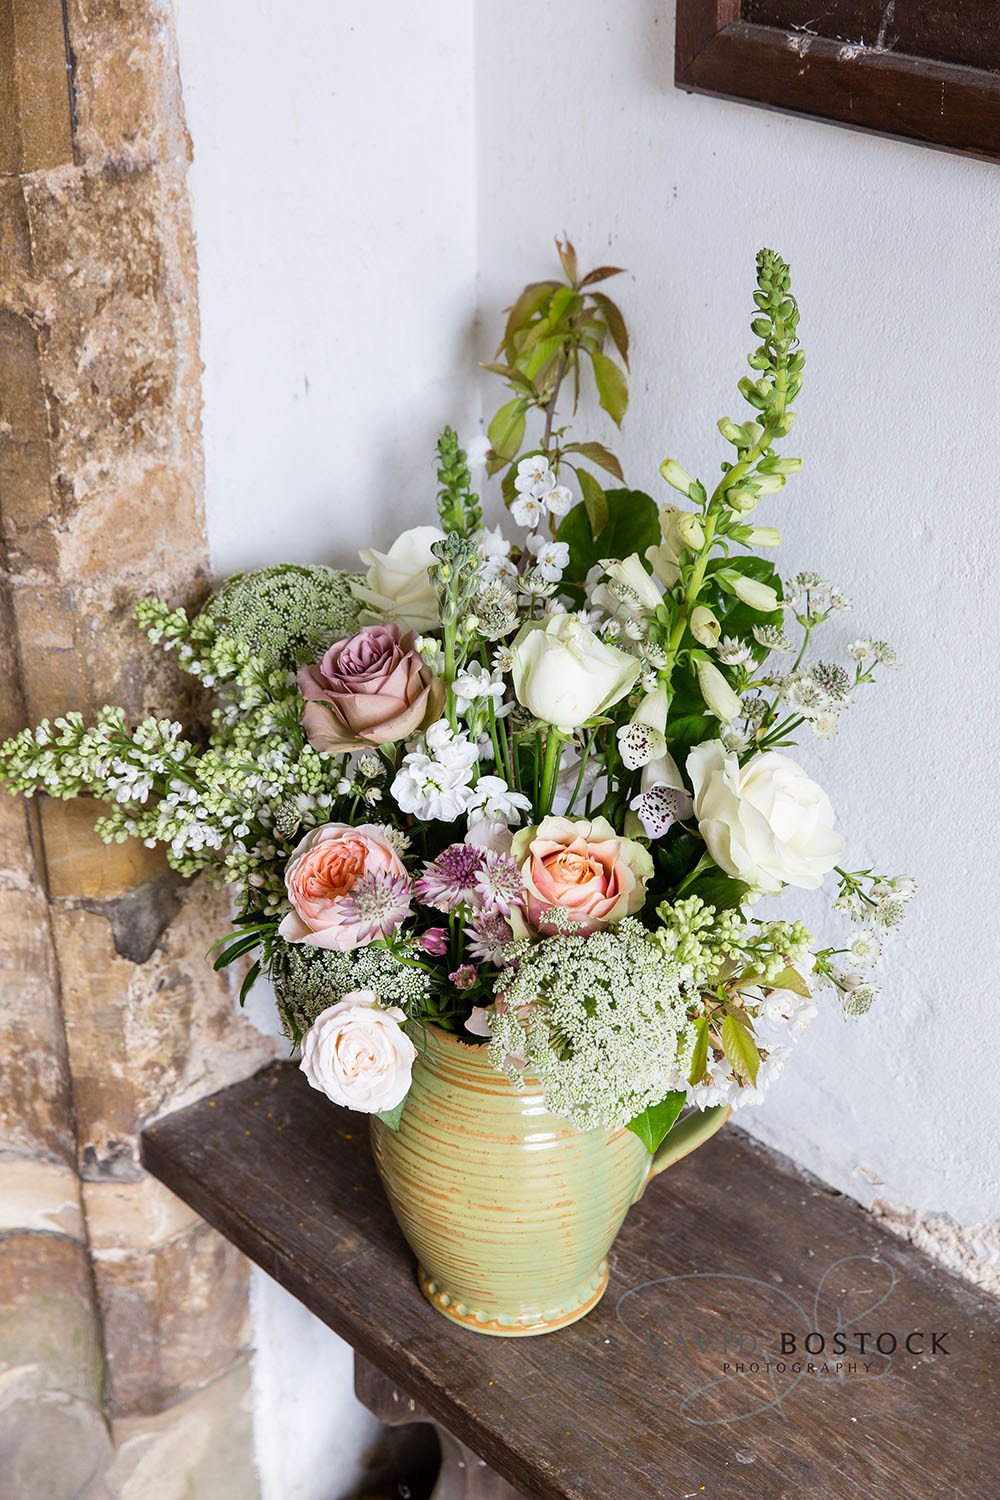 Jug of country flowers in church porch